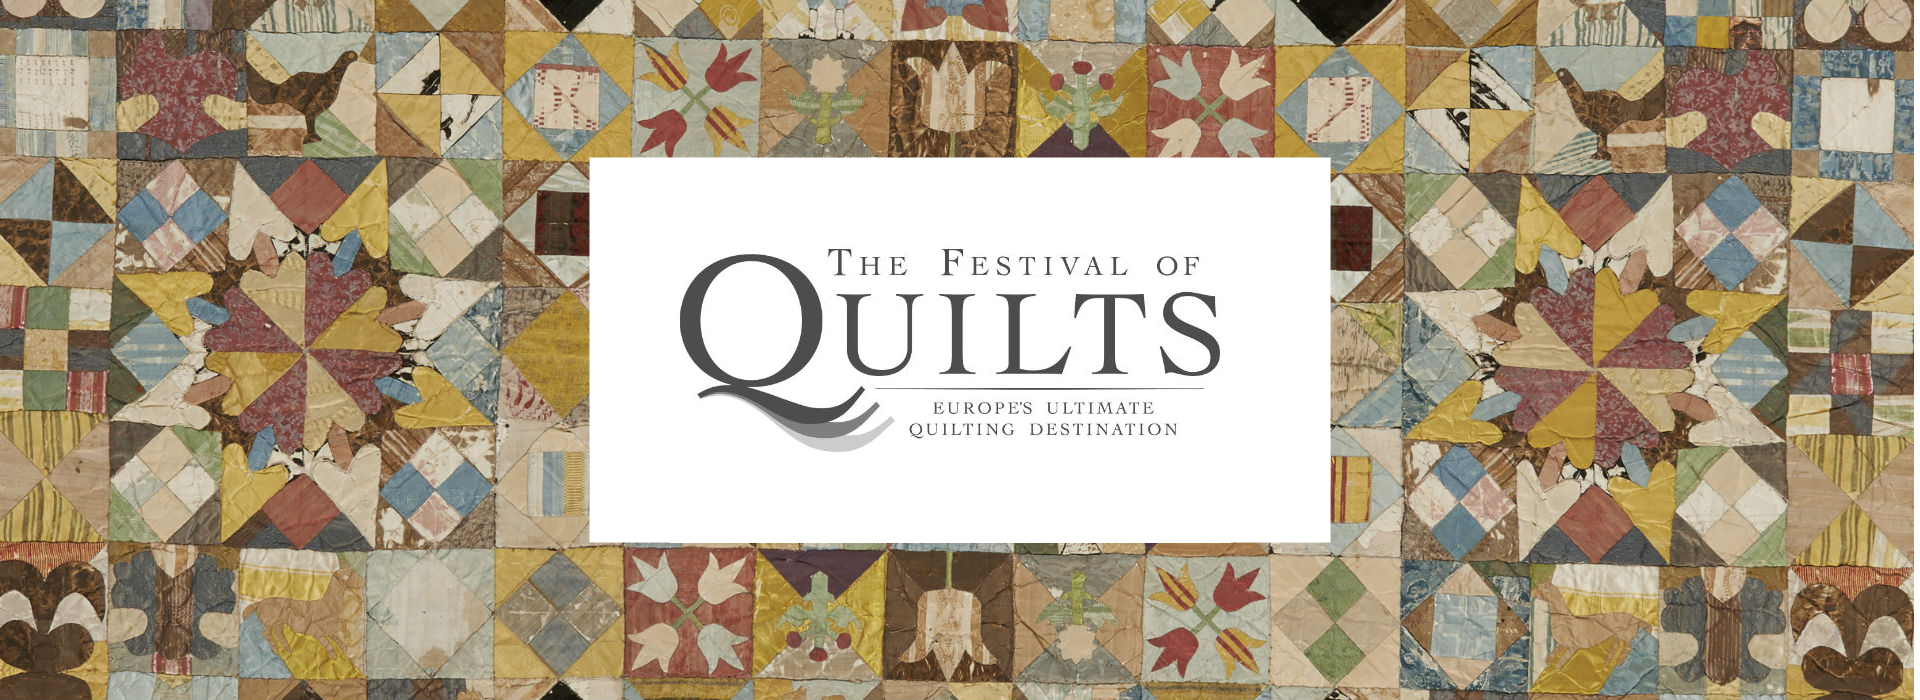 festival-of-quilts.png